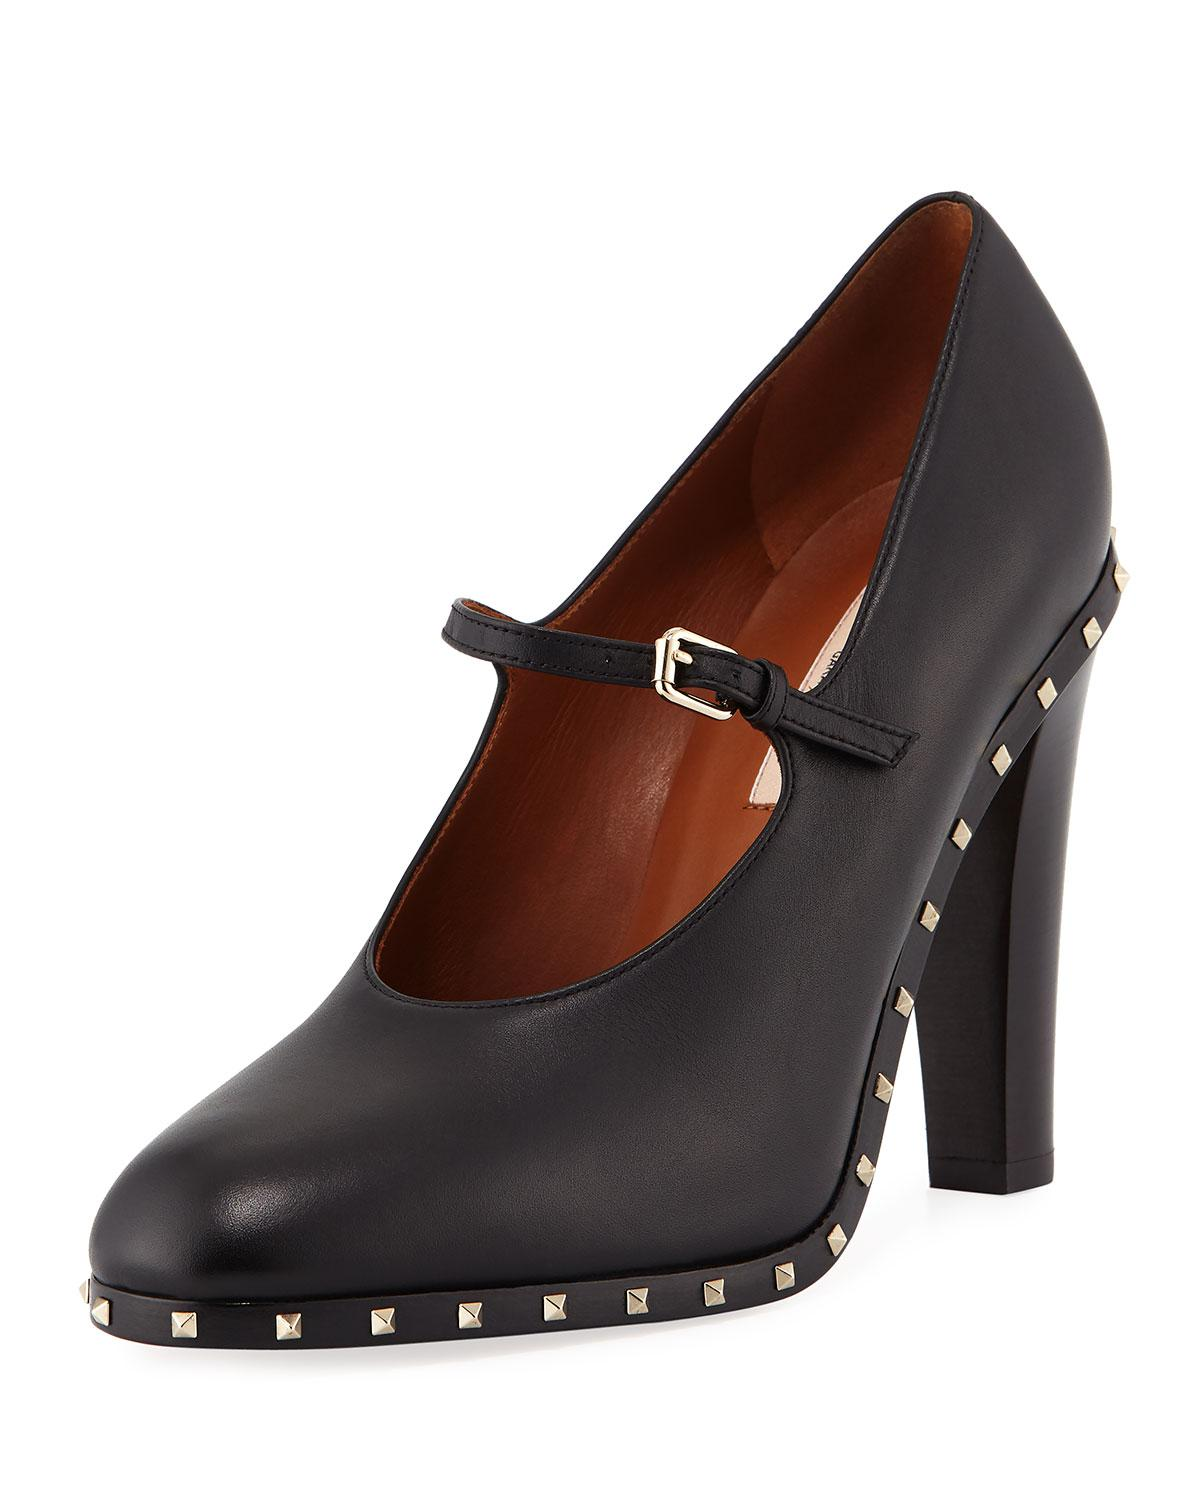 cab0719993 Lyst - Valentino Soul Rockstud Leather Mary Jane Pumps in Black